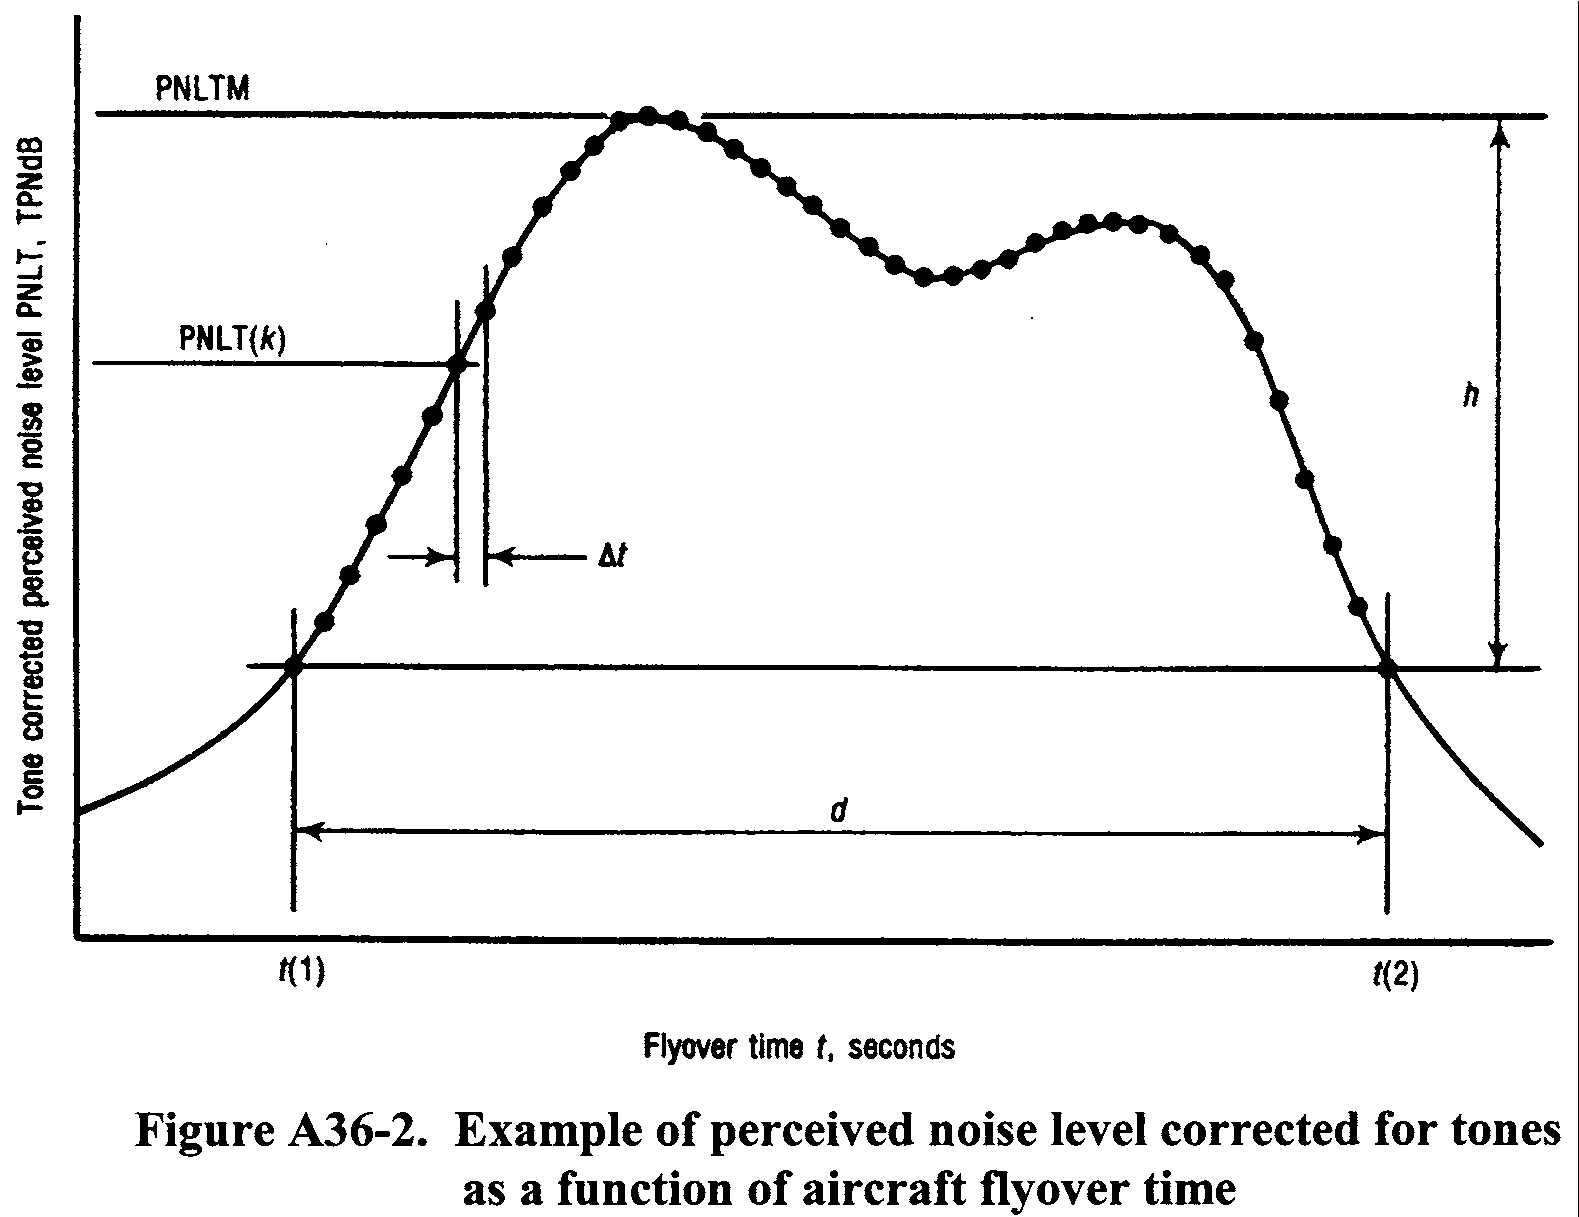 Graphic of In the absence of a tone correction factor, PNLTM would equal PNLM.